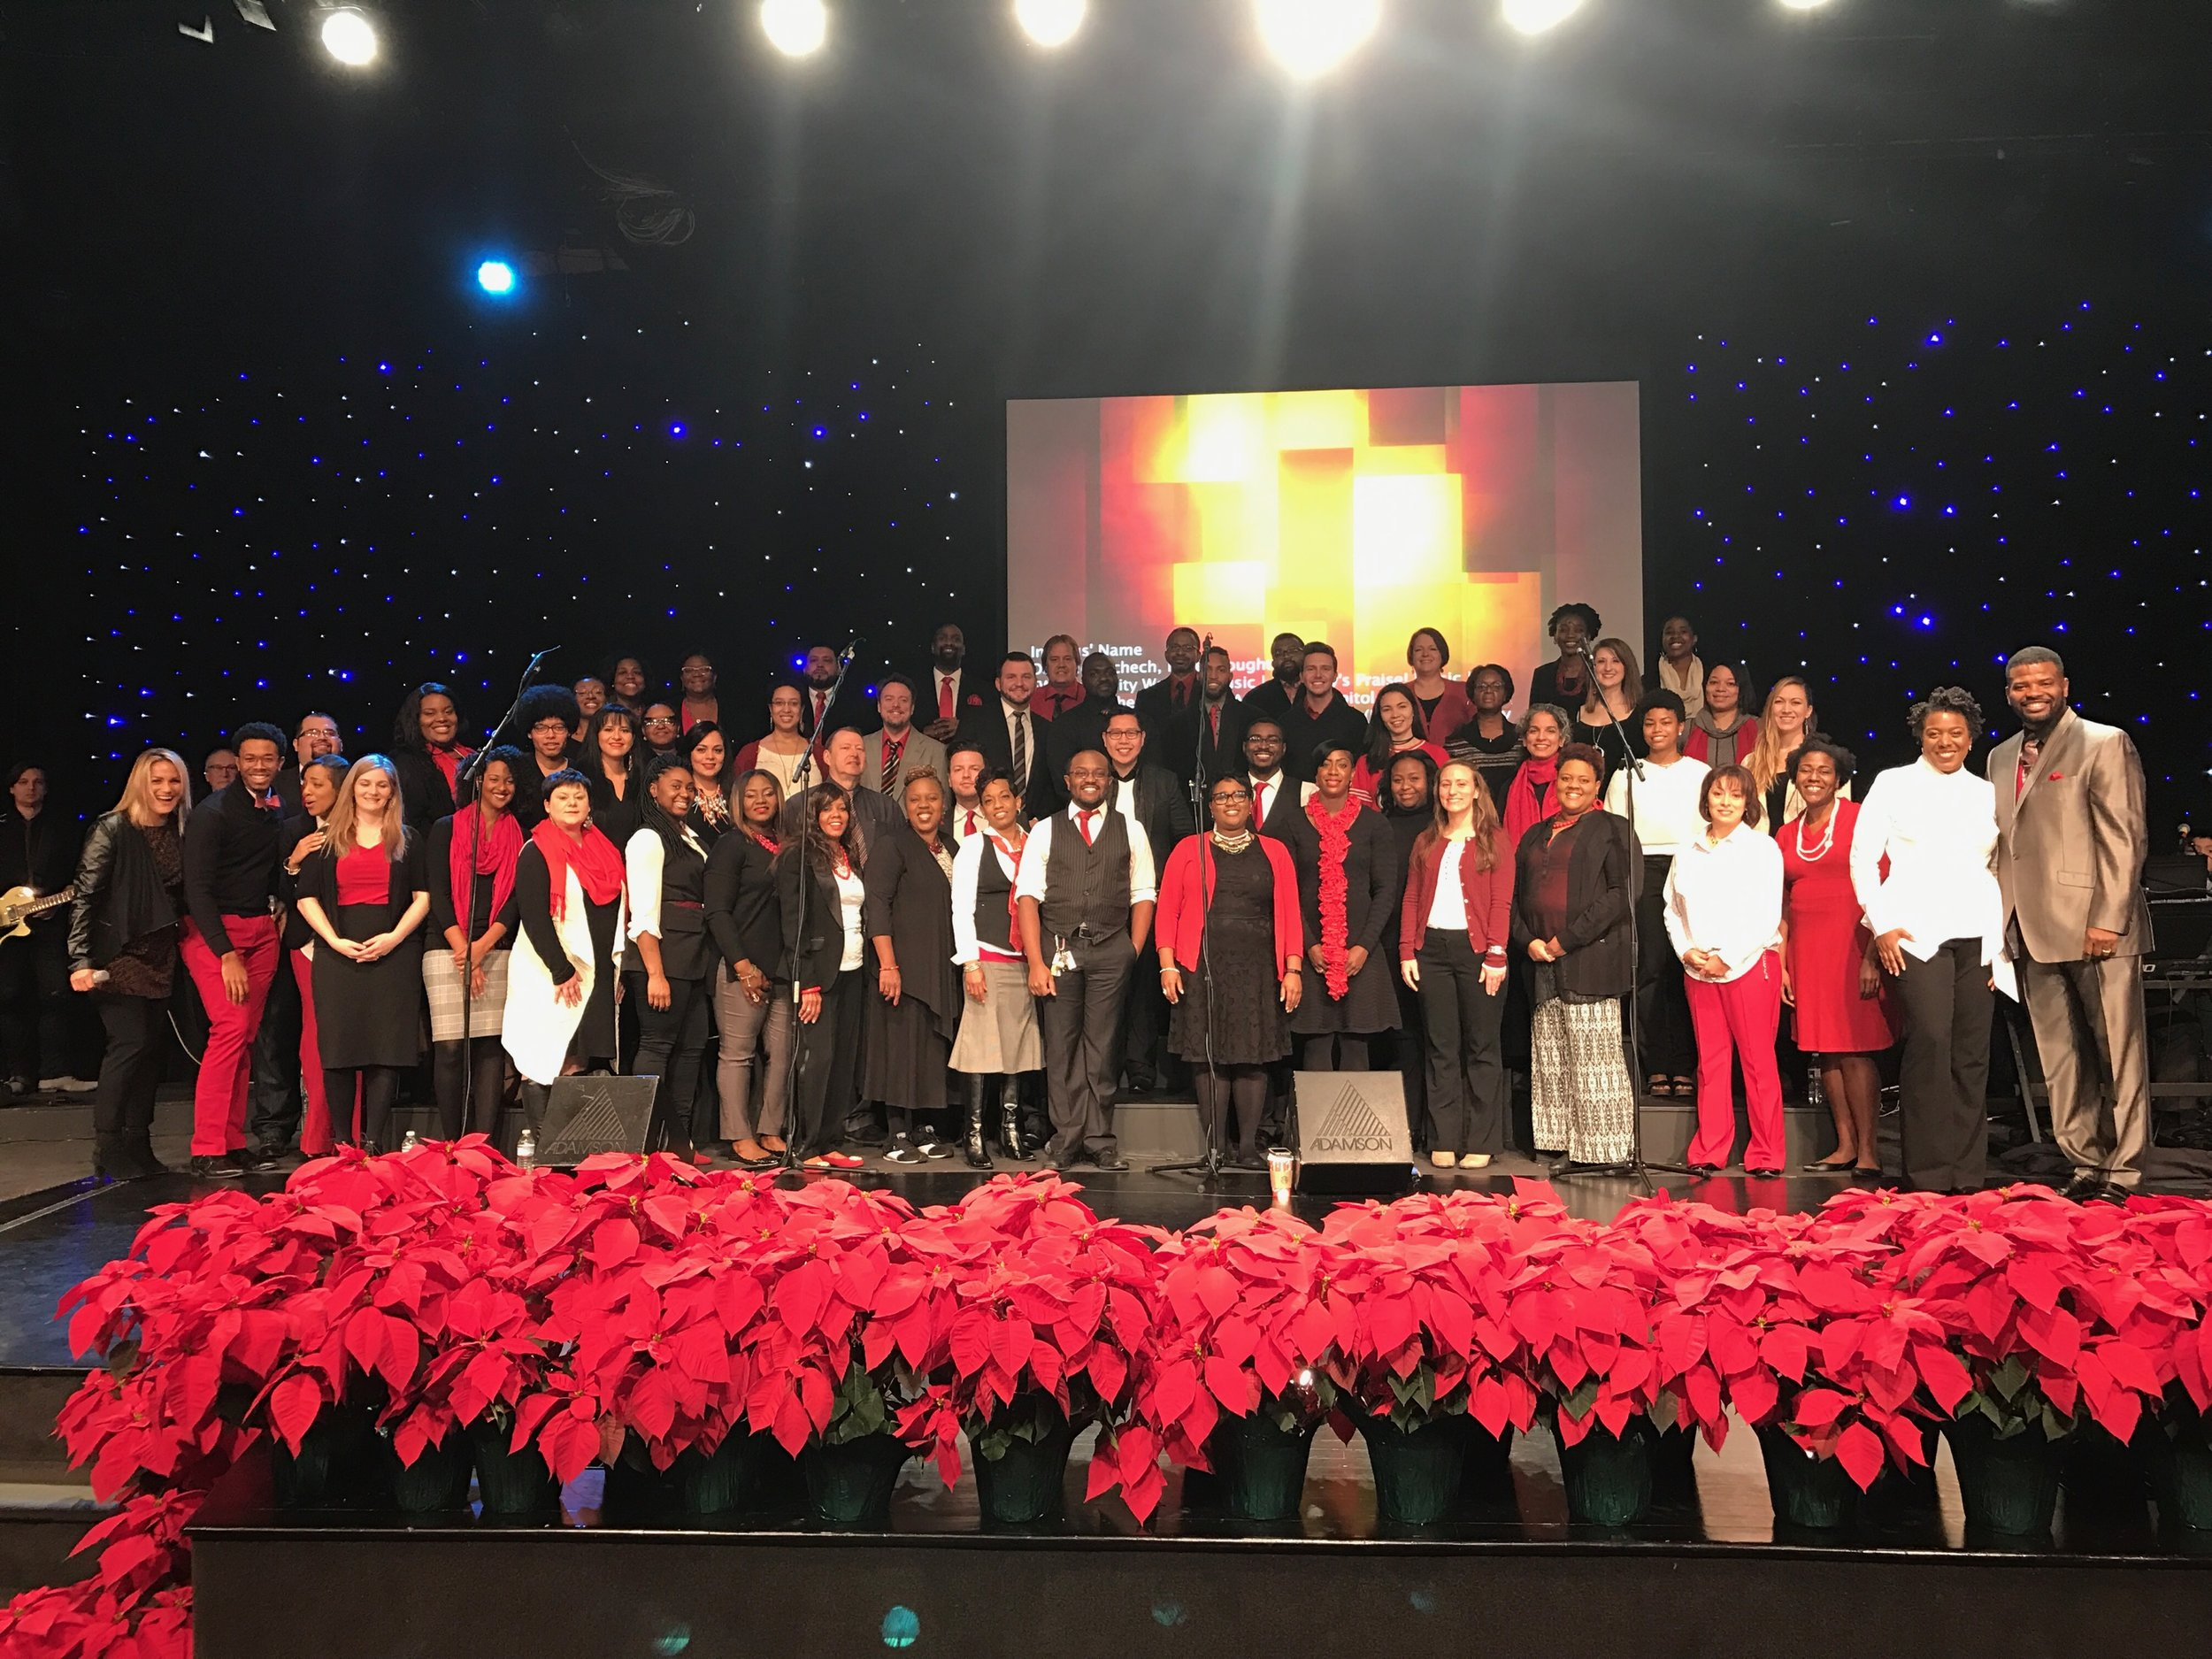 """Pictured:Bethel World Worship Choir, U.S.A.  """"If I could describe in one word the worship at Bethel World Outreach Church, I would say """"unified"""". This brings a lot of other powerful words to mind that also describe Bethel World Worship!To God be the all the glory!"""" -Pastor Will Smith II"""